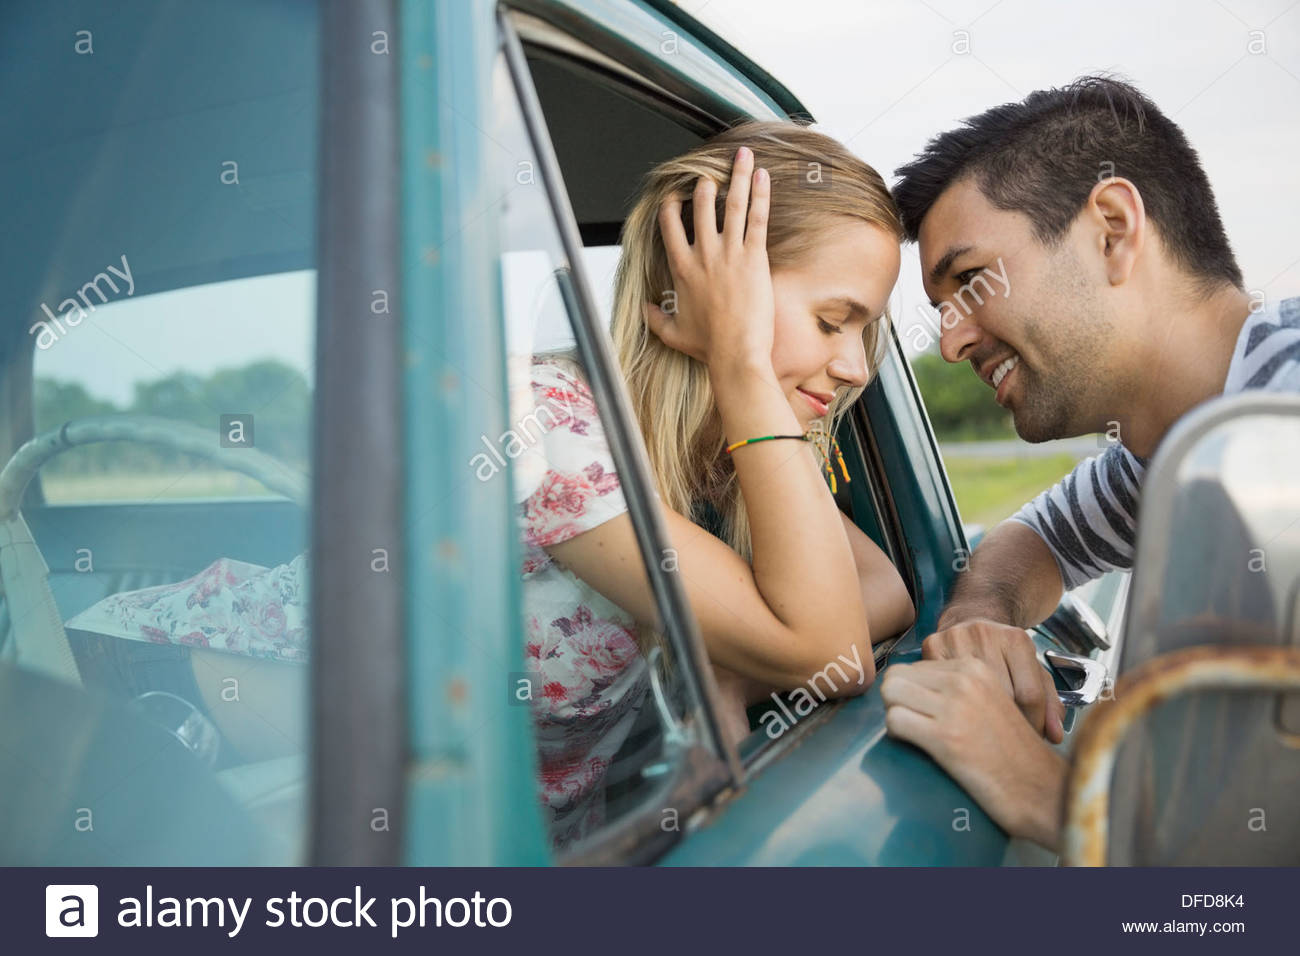 Affectionate young couple outdoors - Stock Image